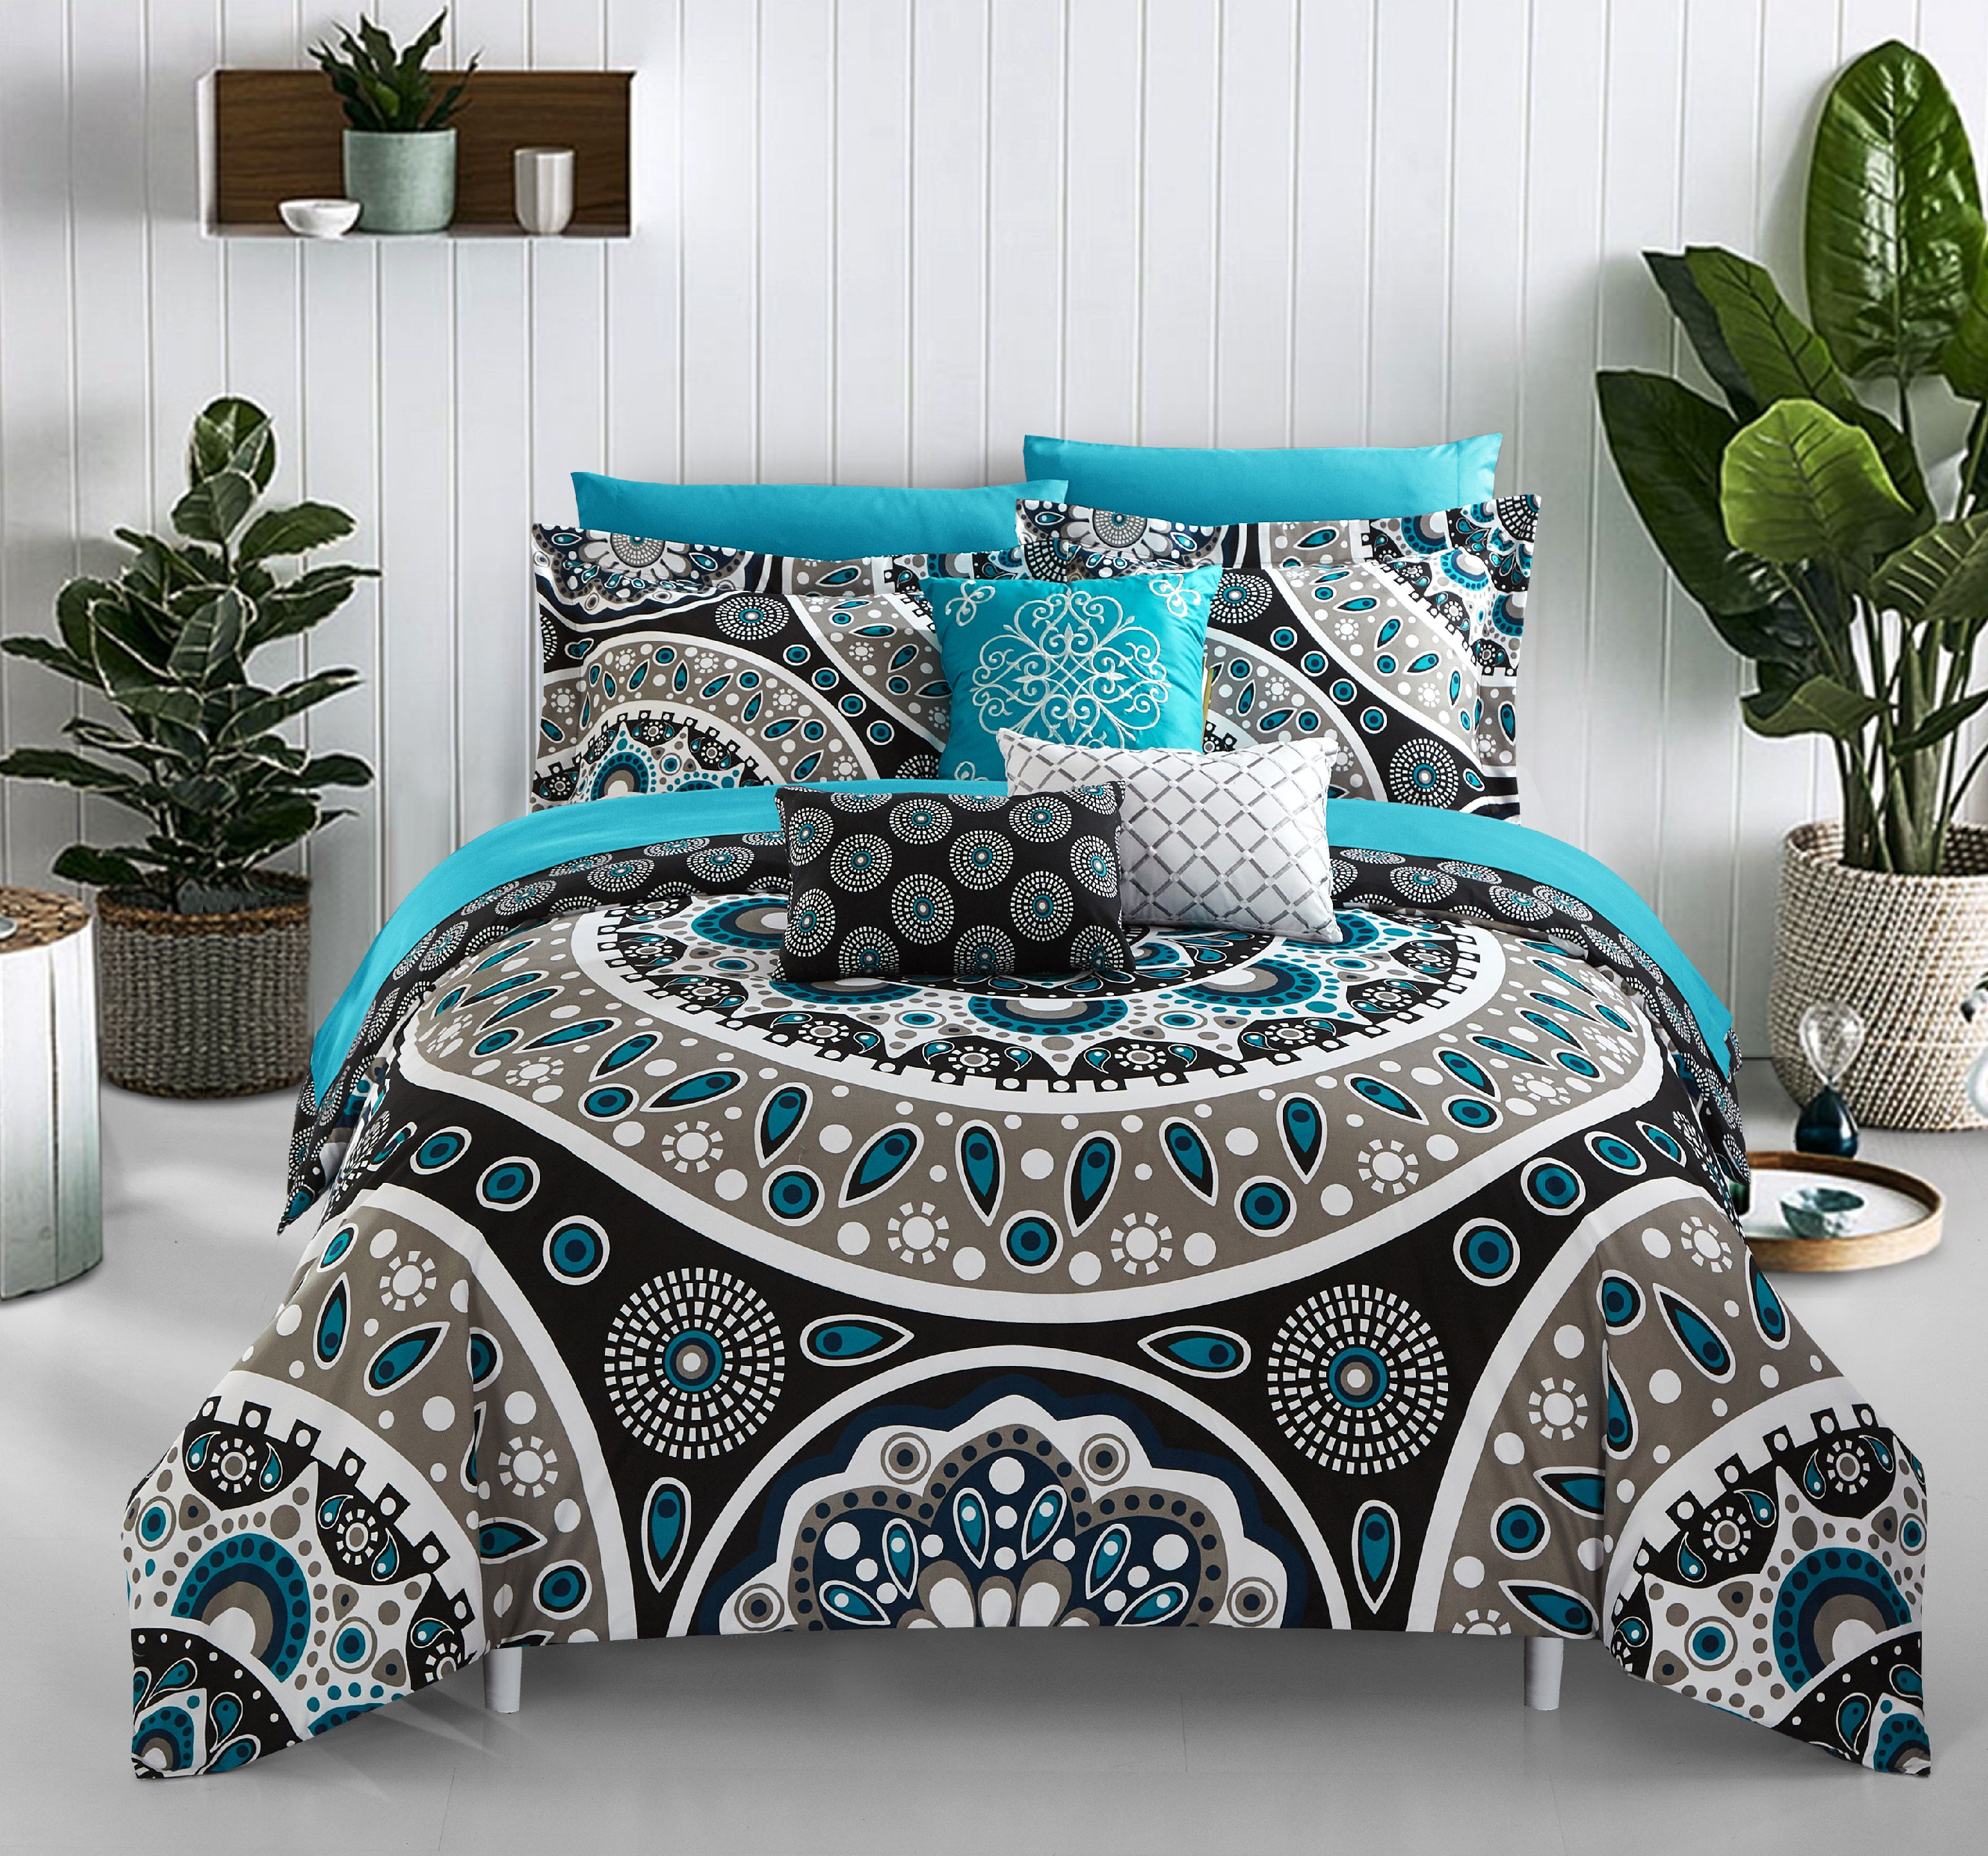 Chic Home Gaston 10 Piece Reversible Bed in a Bag Comforter Set